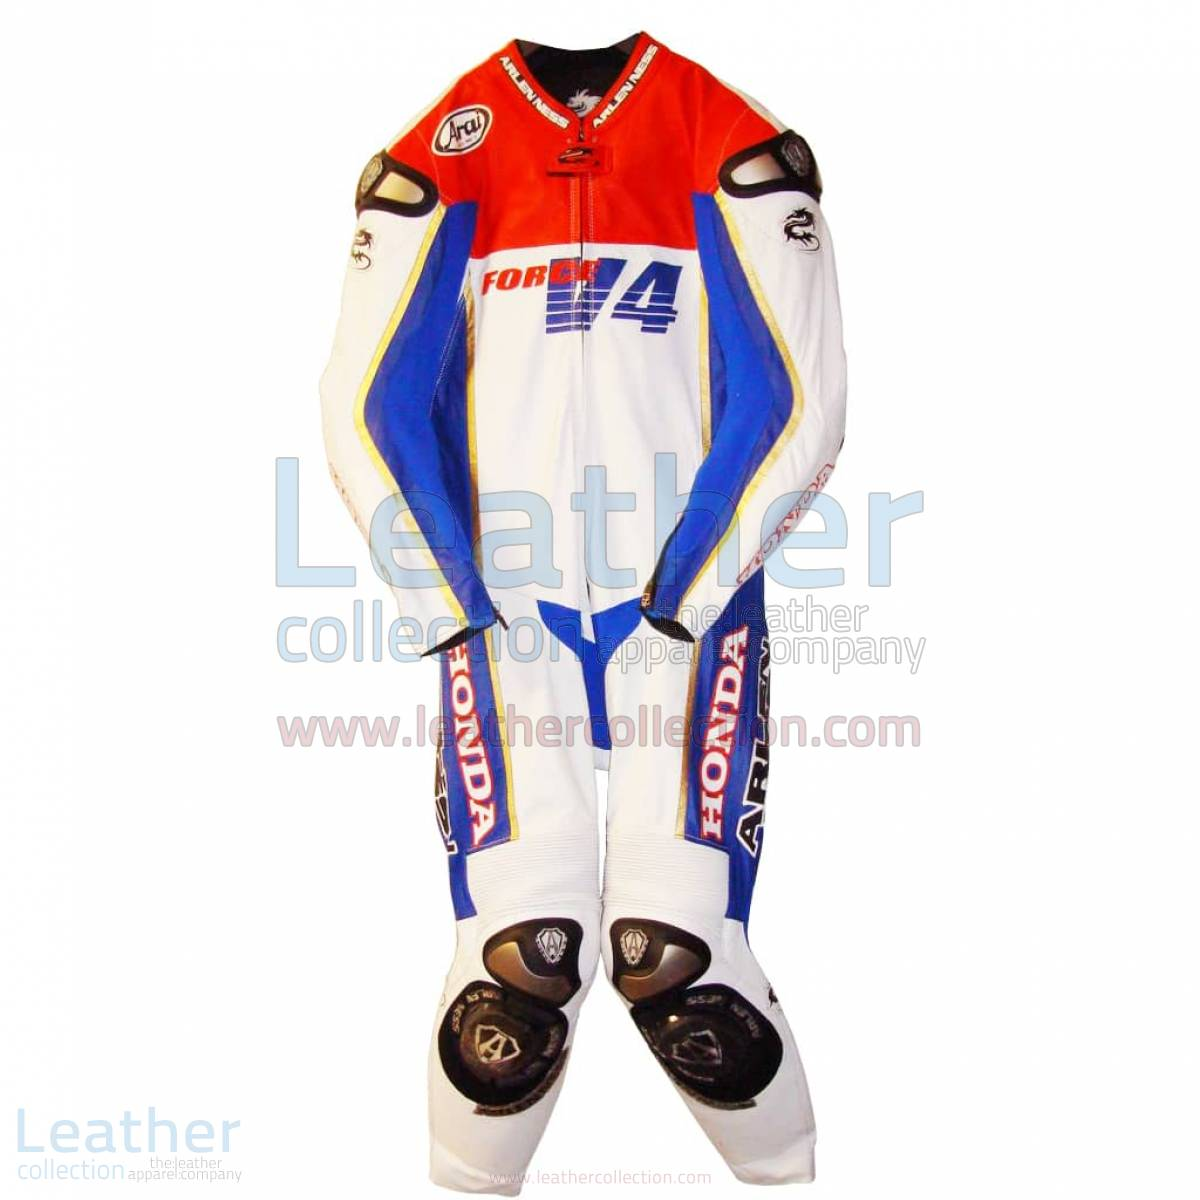 Roger Burnett Honda Goodwood Racing Suit – Honda Suit